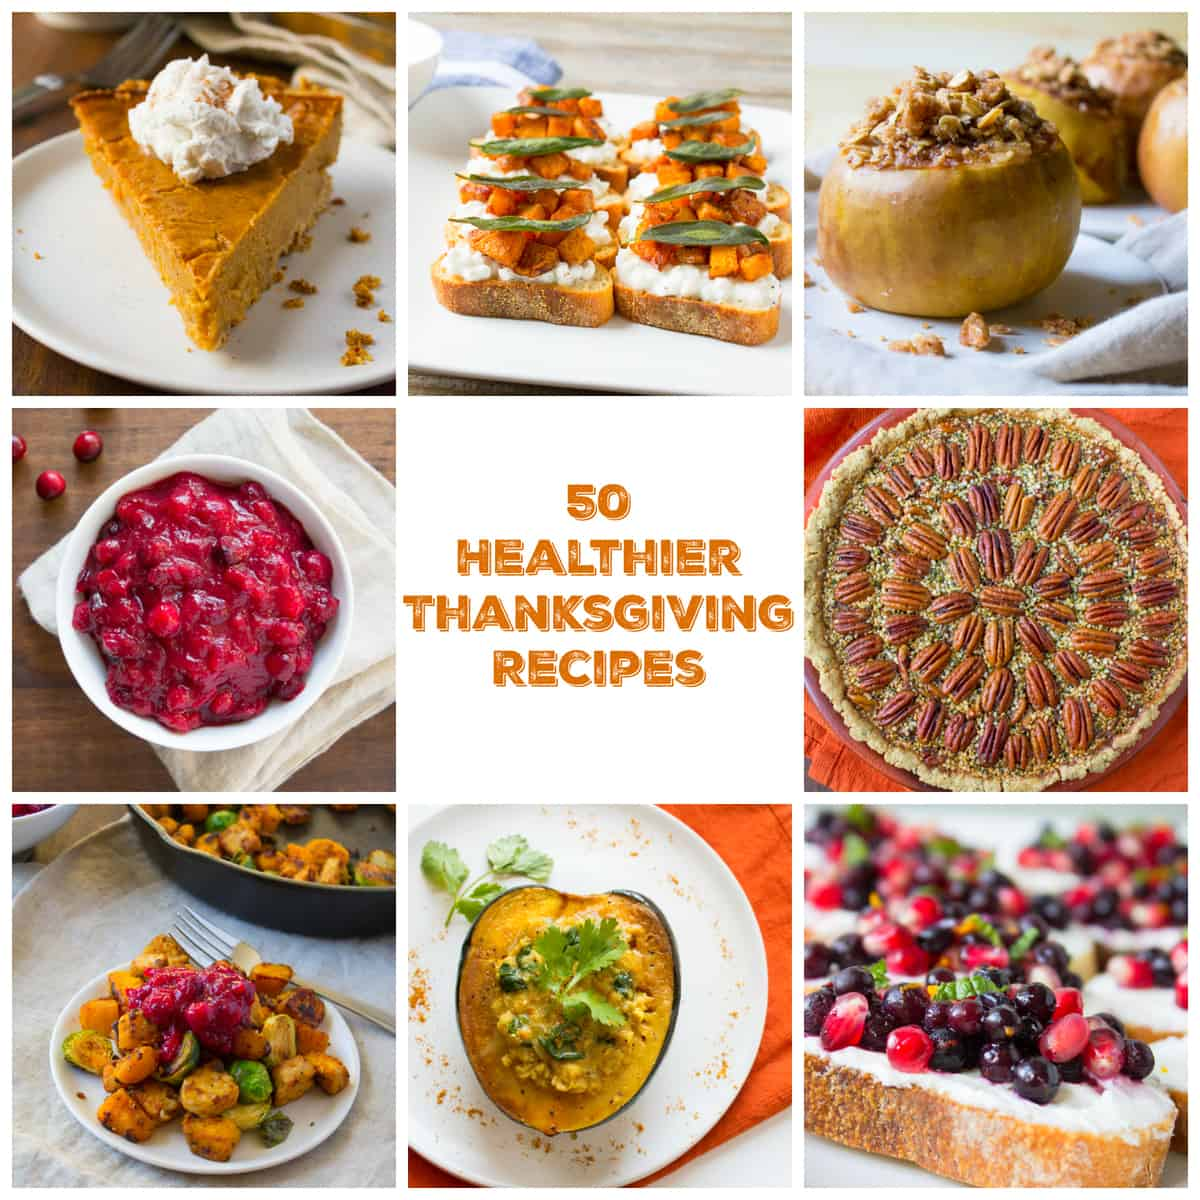 In the spirit of I-can't-believe-it's-almost-Thanksgiving, I'm throwing 50 healthier Thanksgiving recipes at you. We're talking apps, salads, soups, mains, sides and most importantly, dessert.